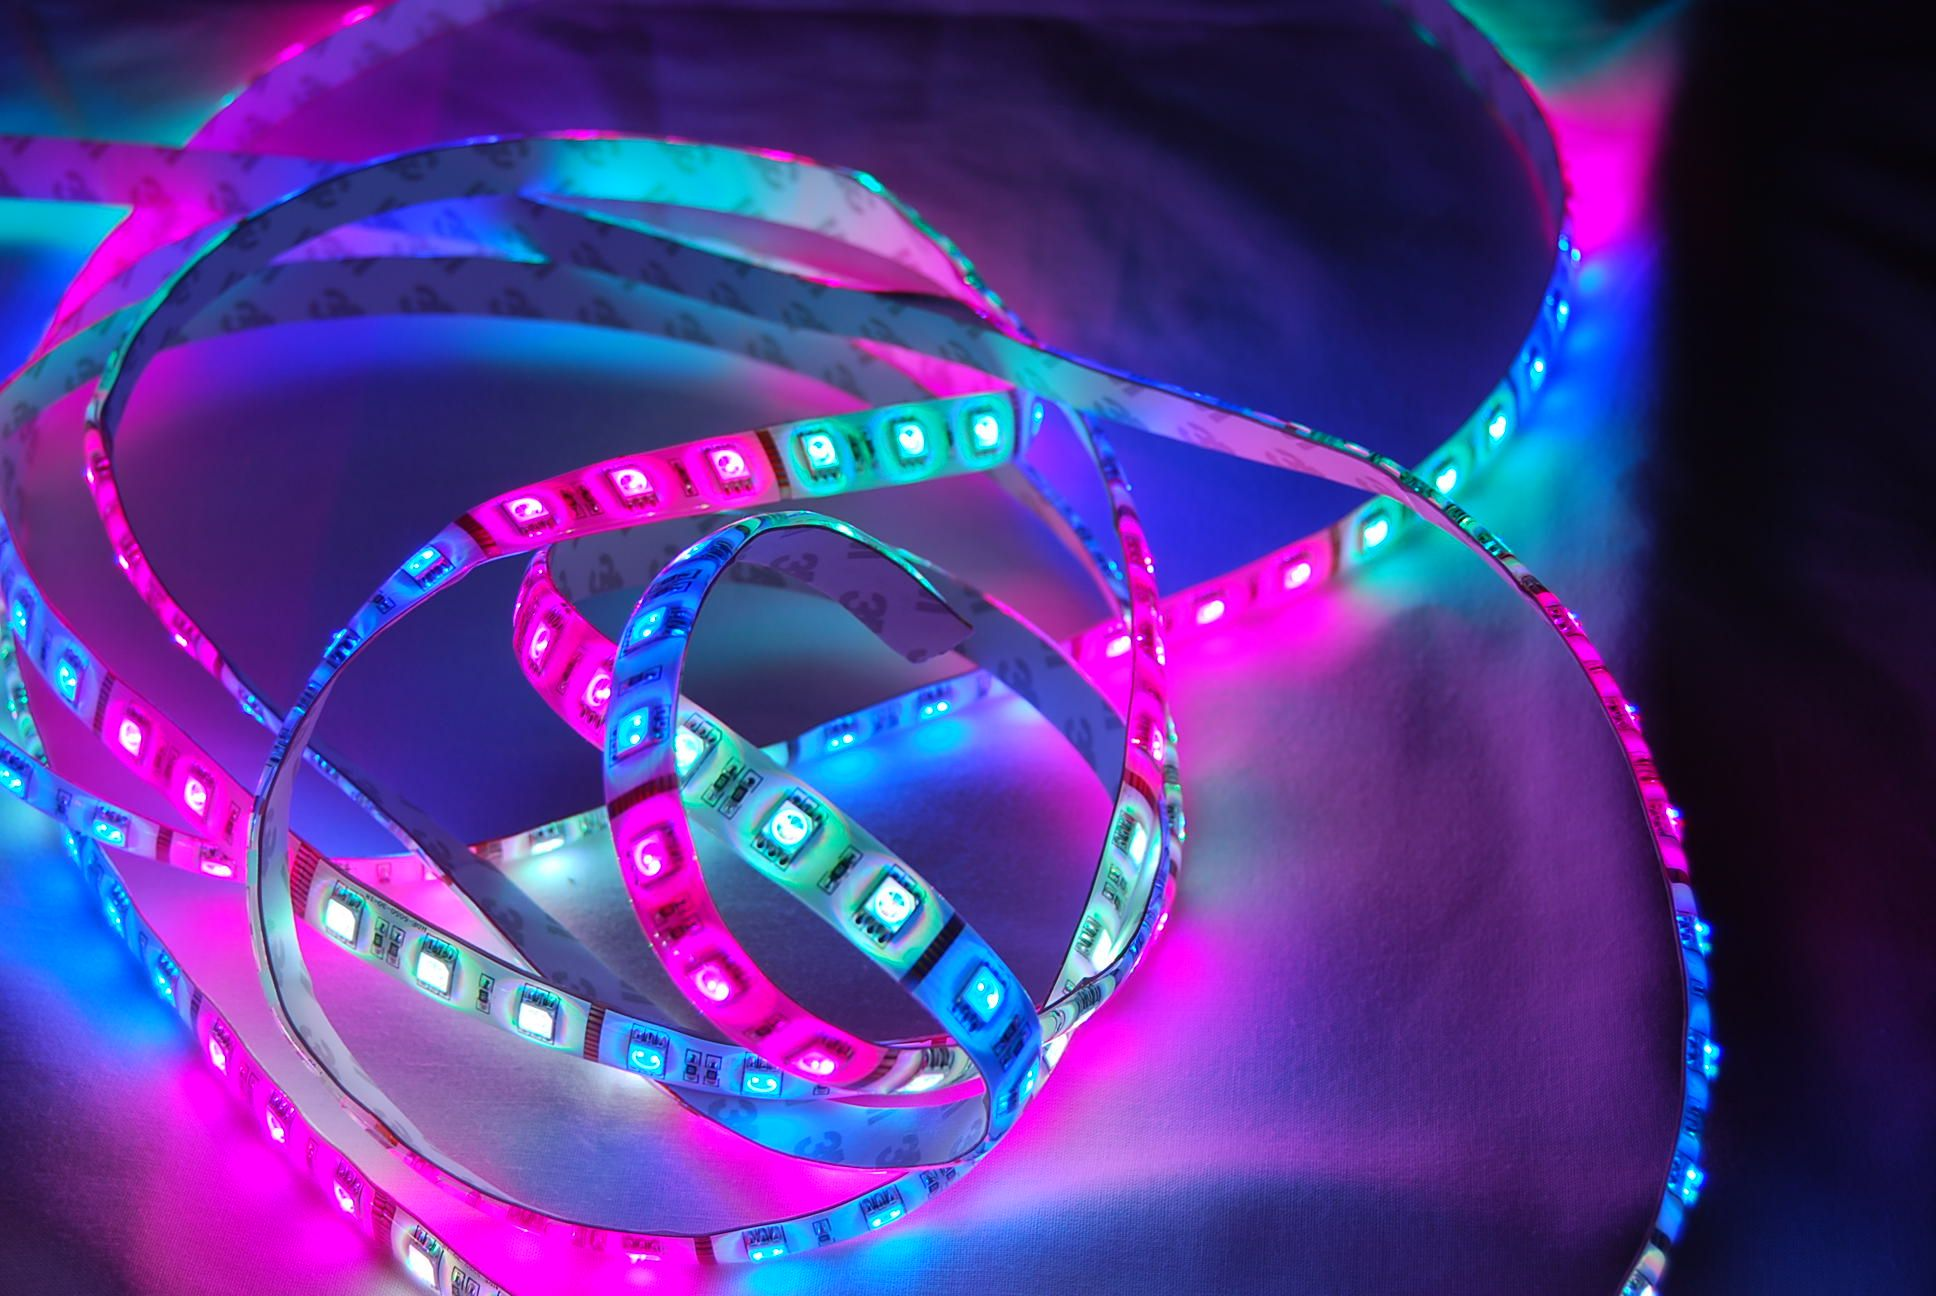 Led color changing strip lights have hit the market with a bang led color changing strip lights have hit the market with a bang drawing in consumers aloadofball Image collections